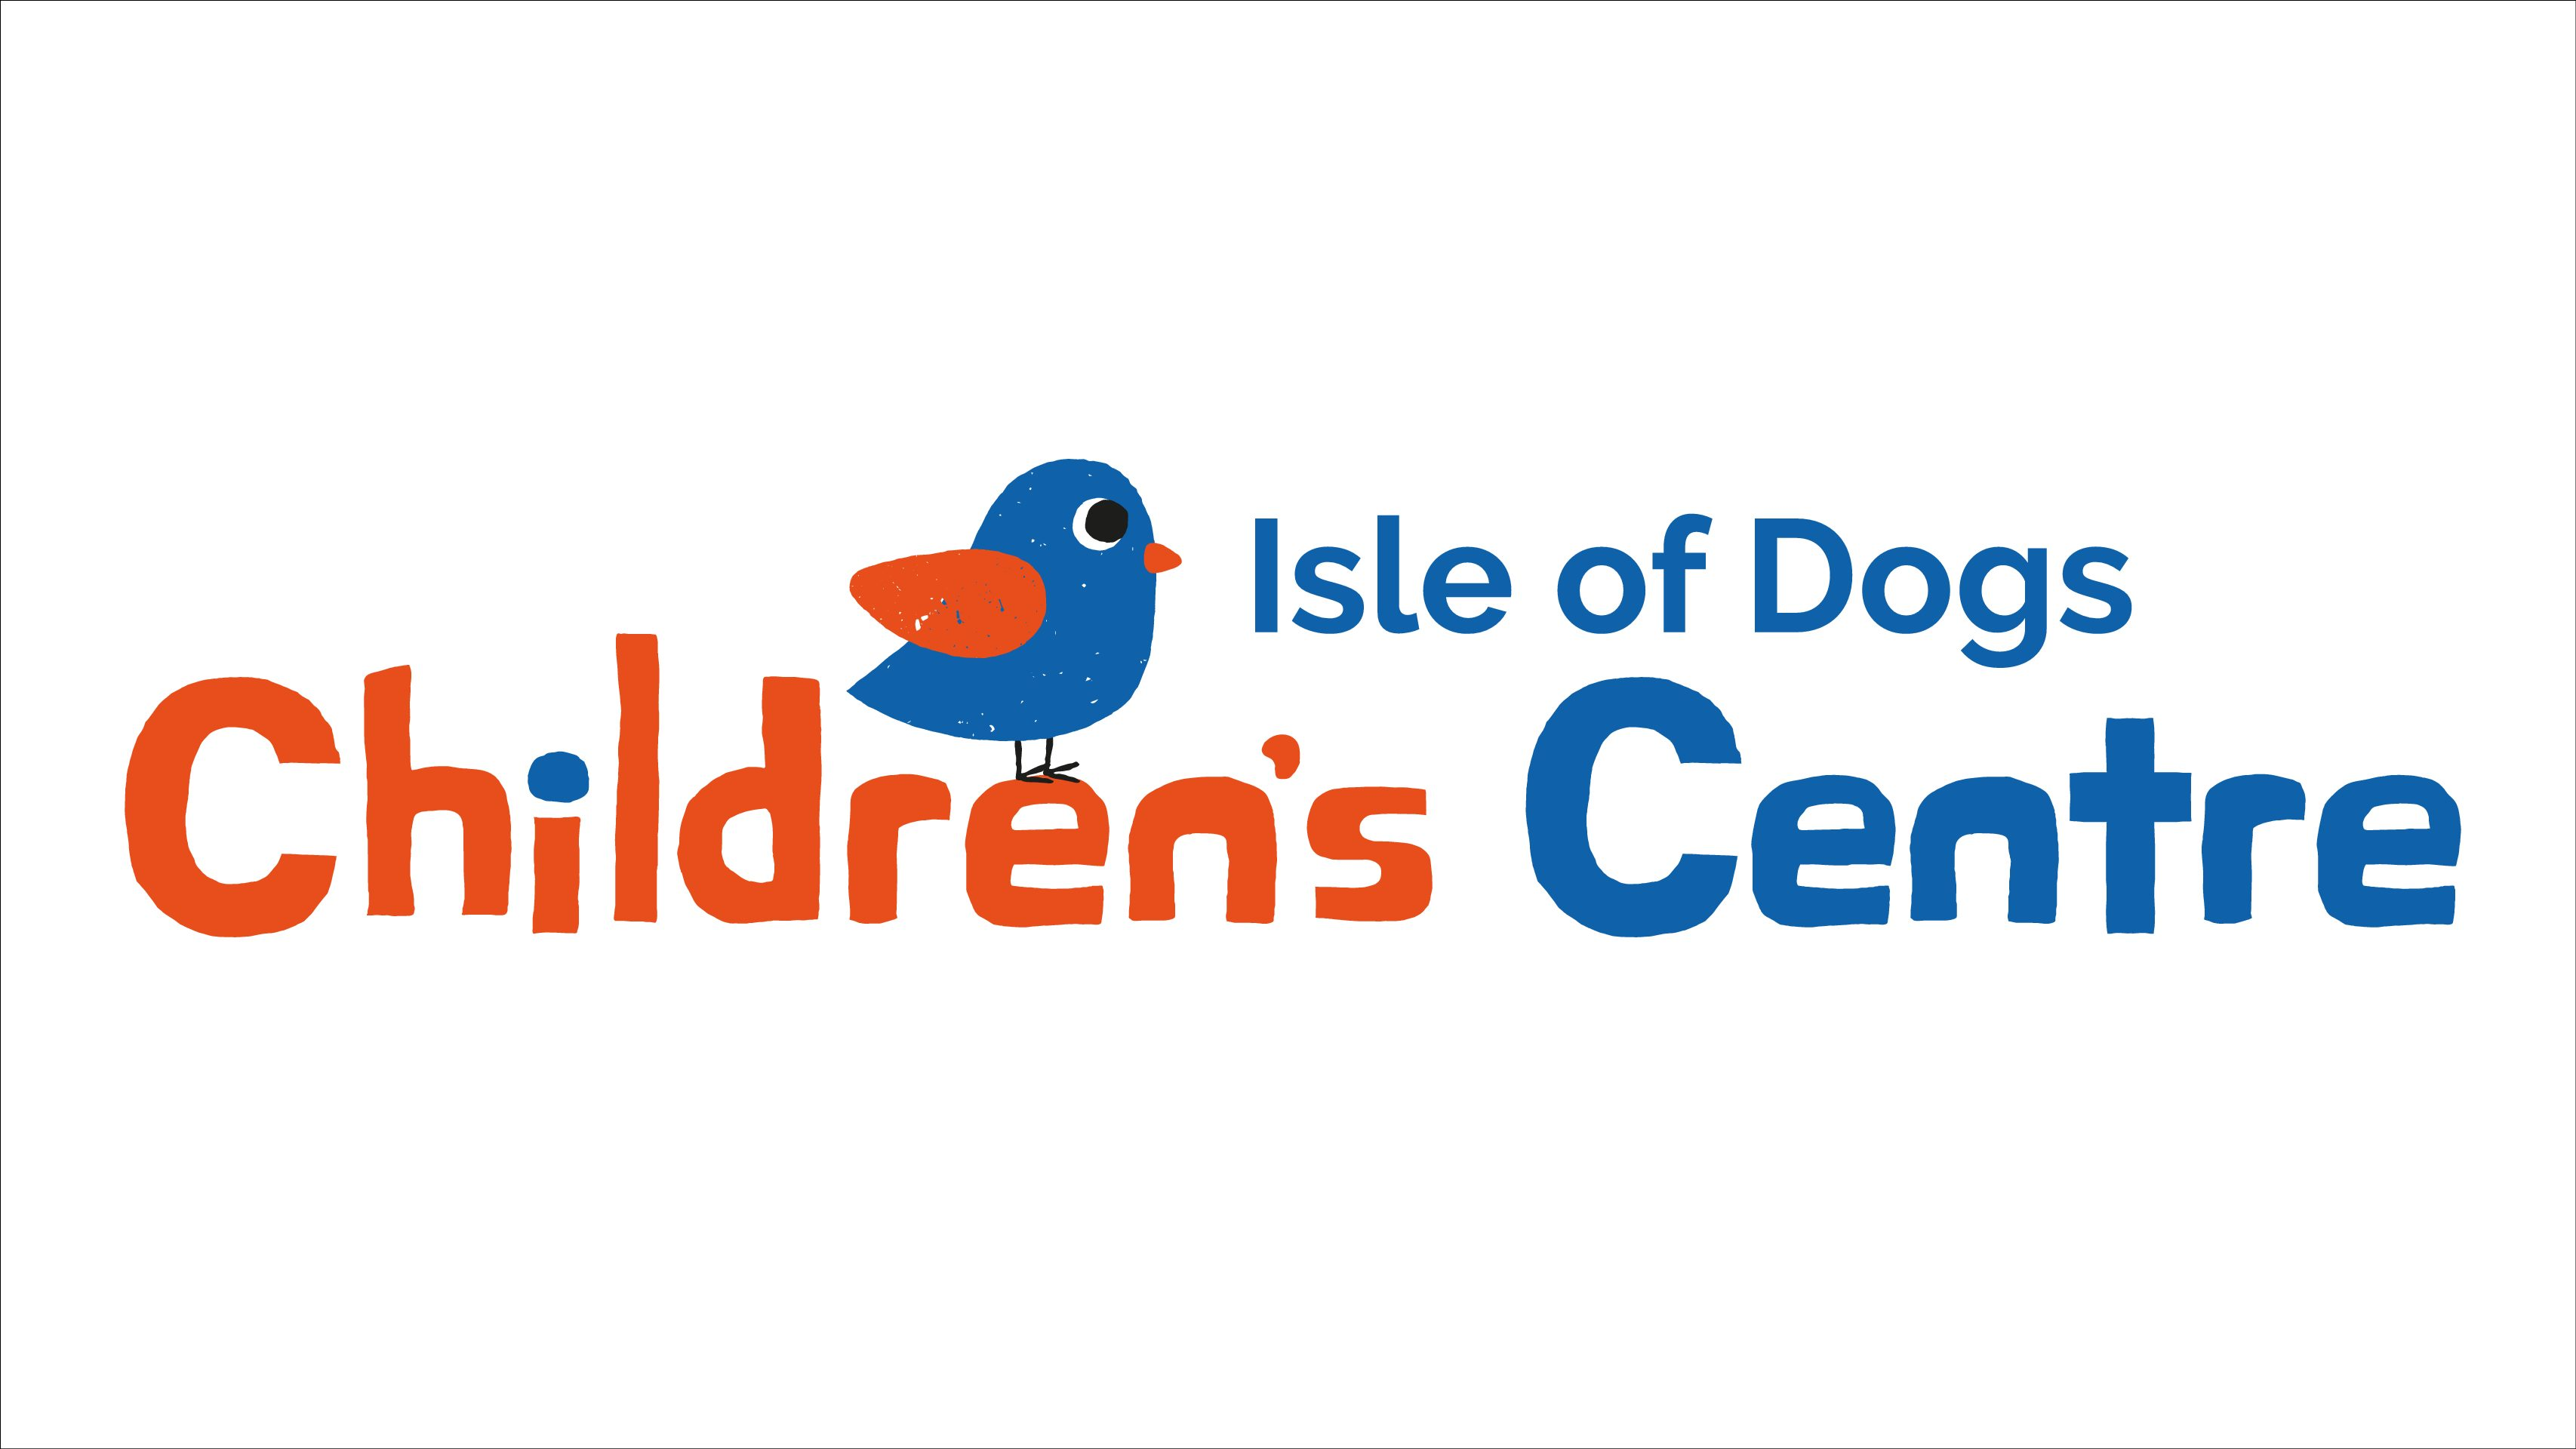 Isle of Dogs Children's Centre Summer Activities